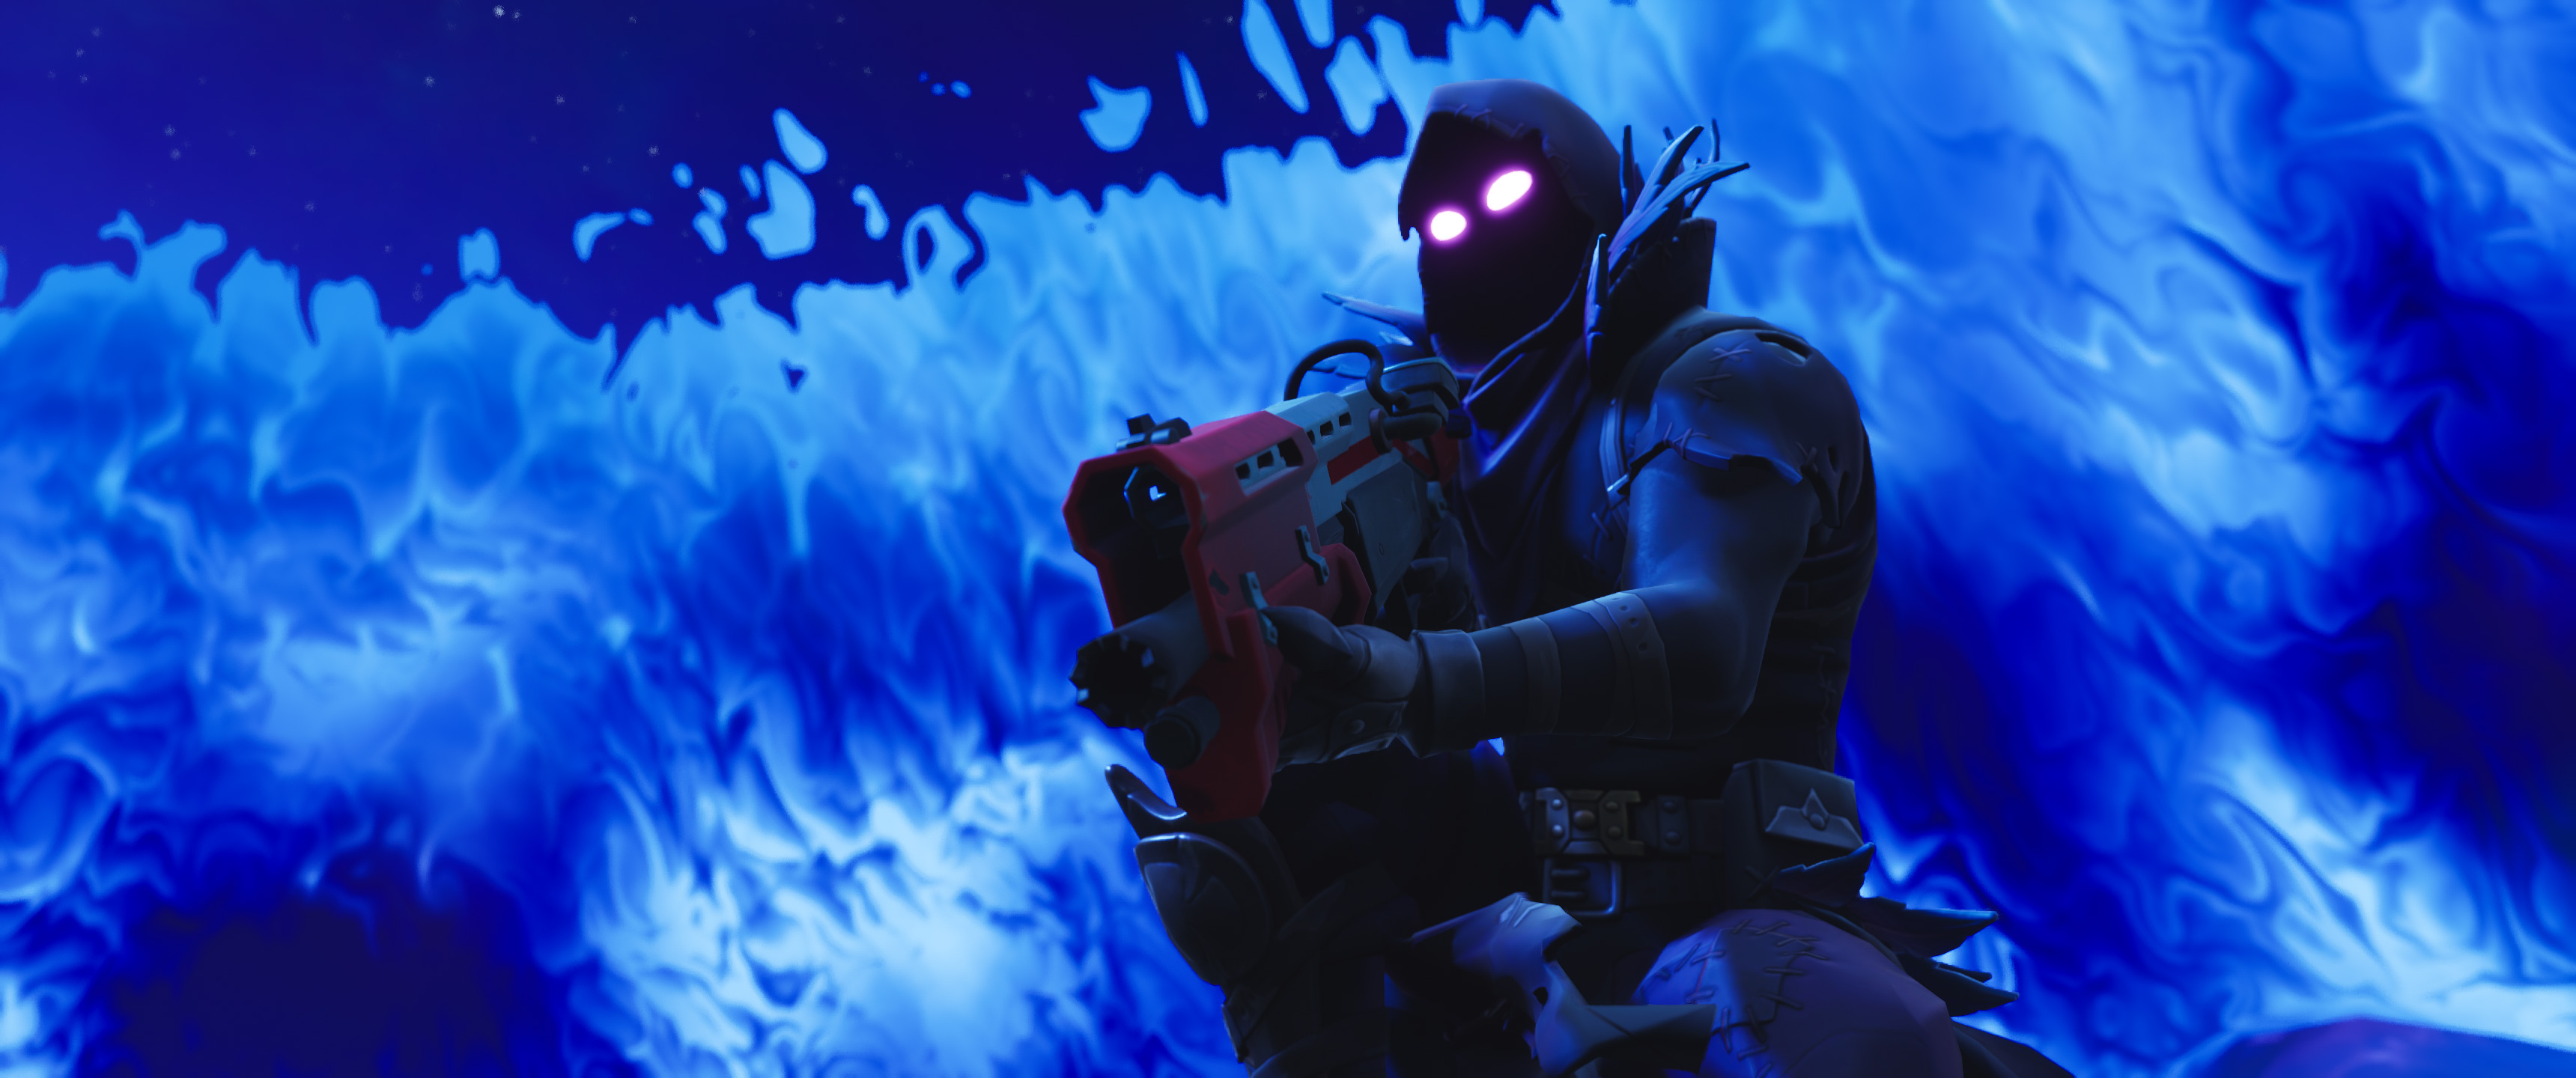 Raven Fortnite Battle Royale Hd Games 4k Wallpapers Images Backgrounds Photos And Pictures